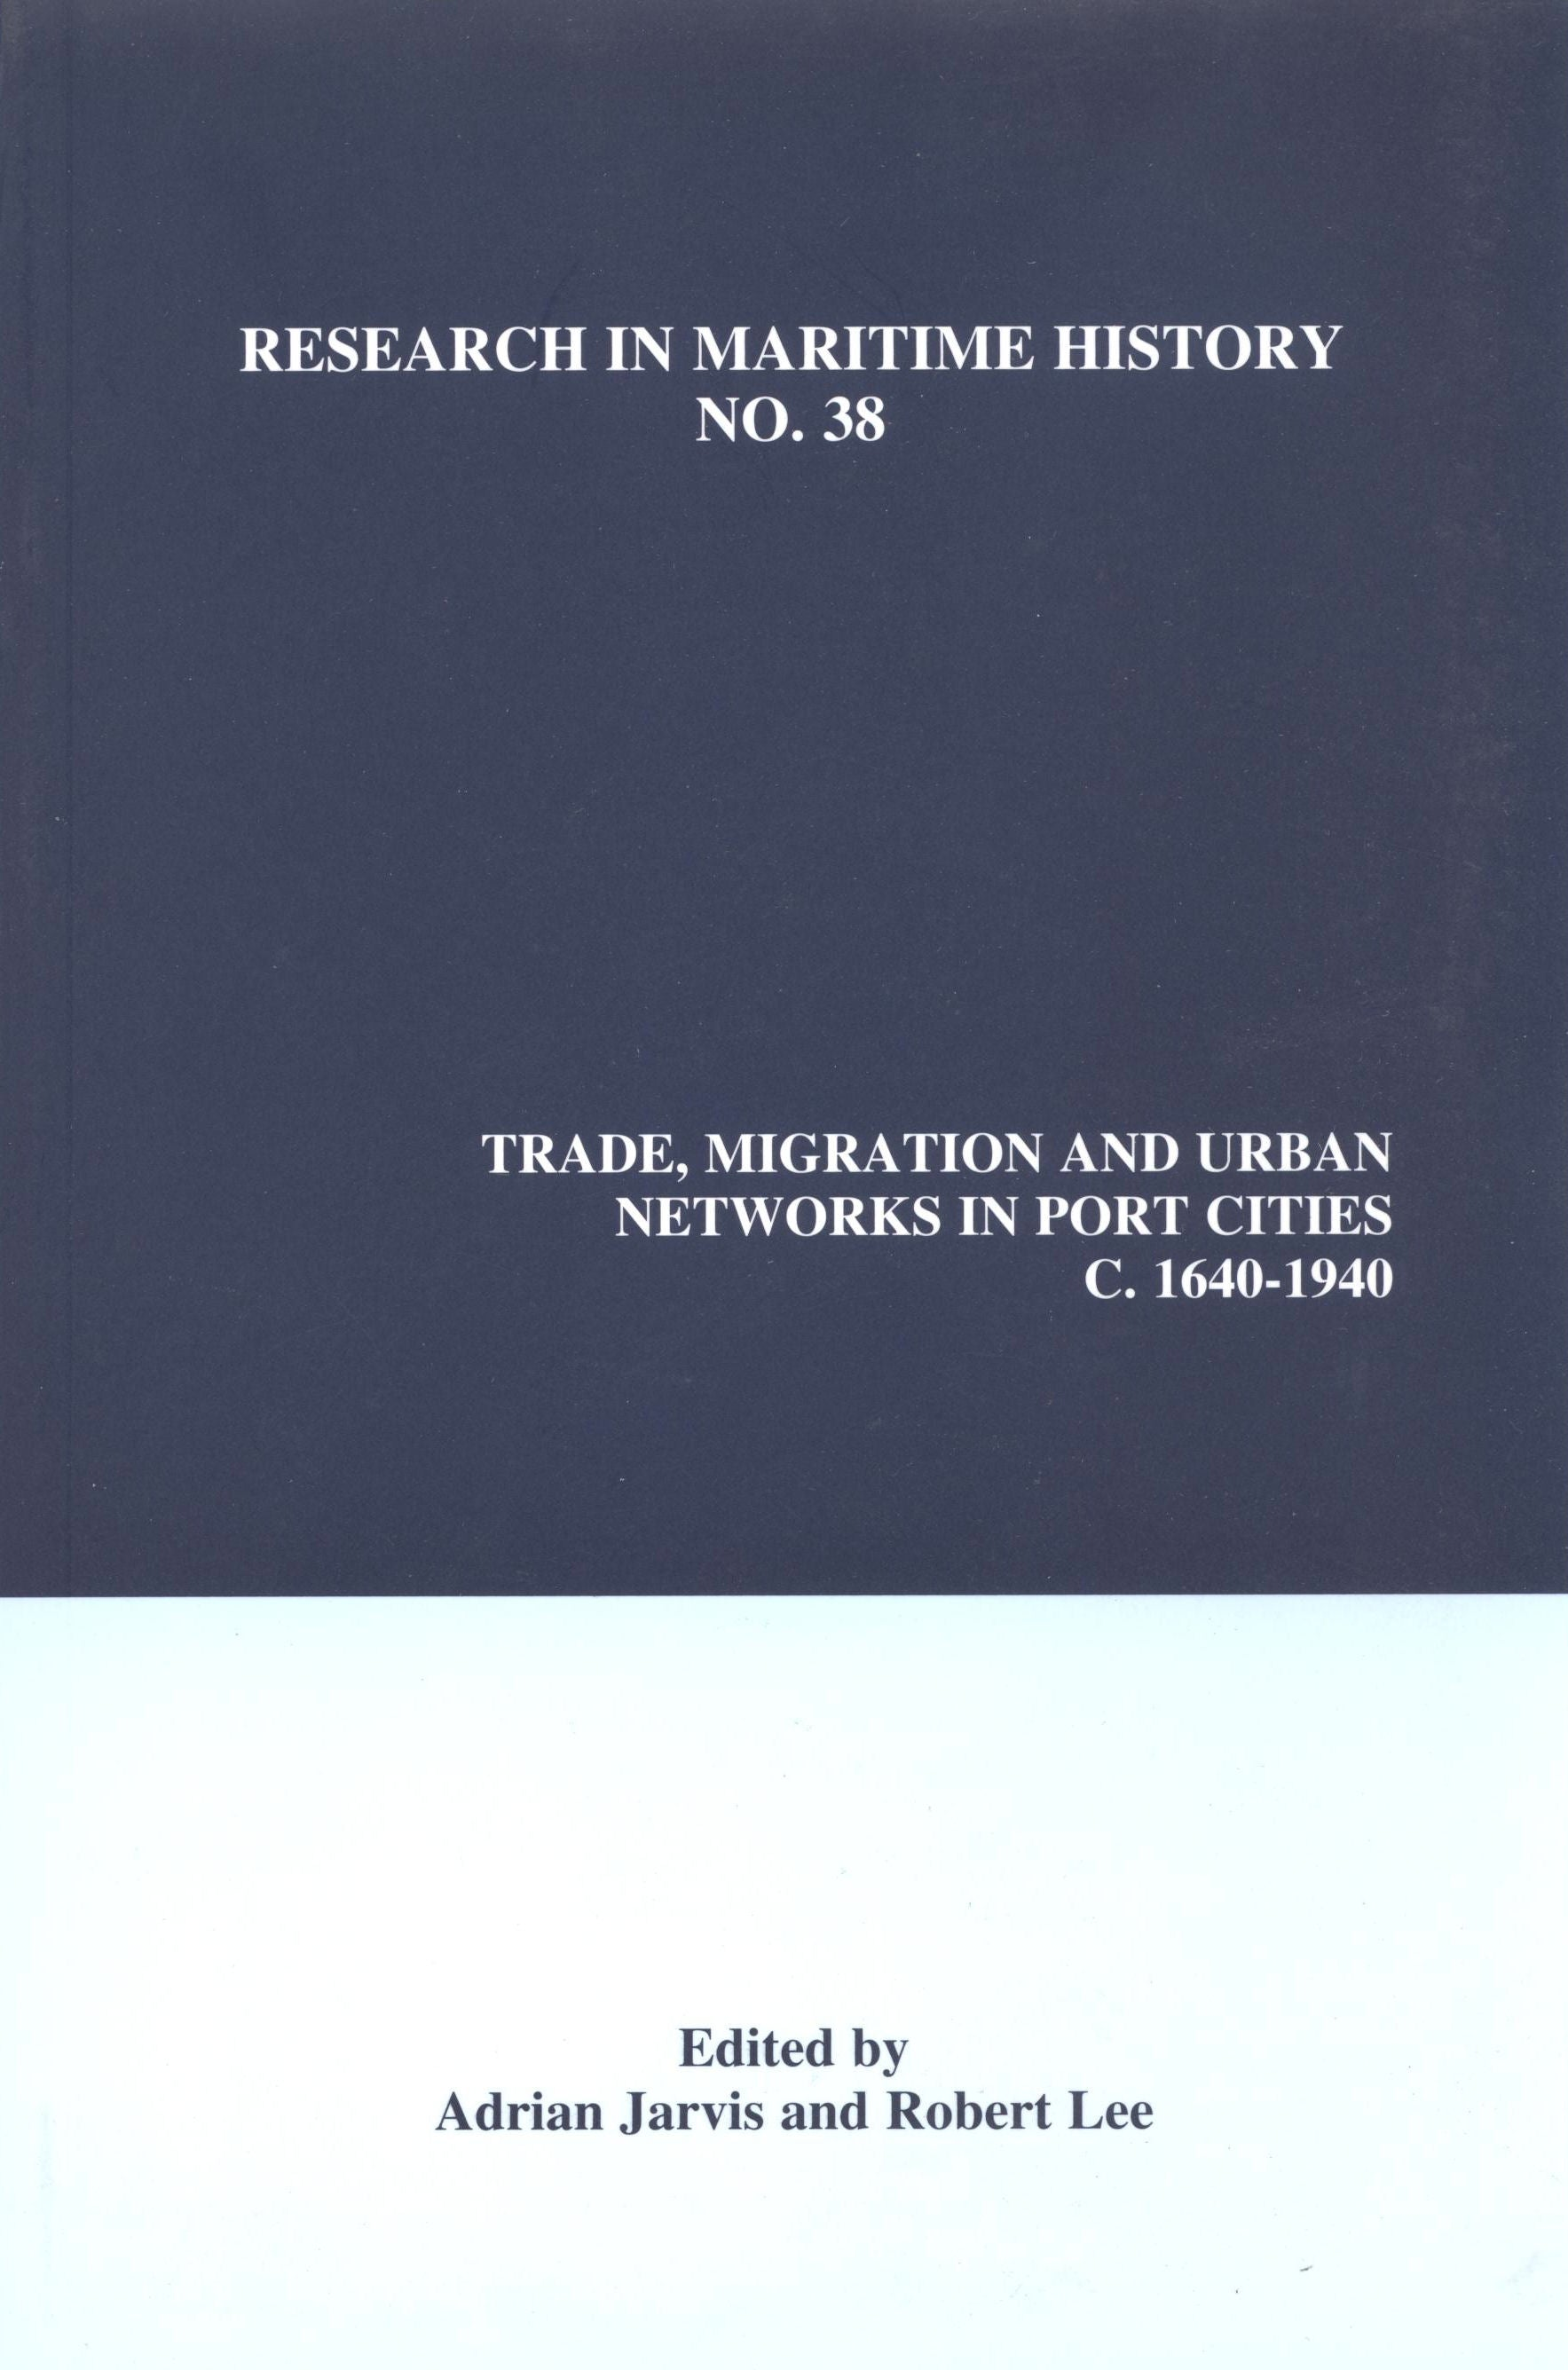 Trade, Migration and Urban Networks in Port Cities, c. 1640-1940